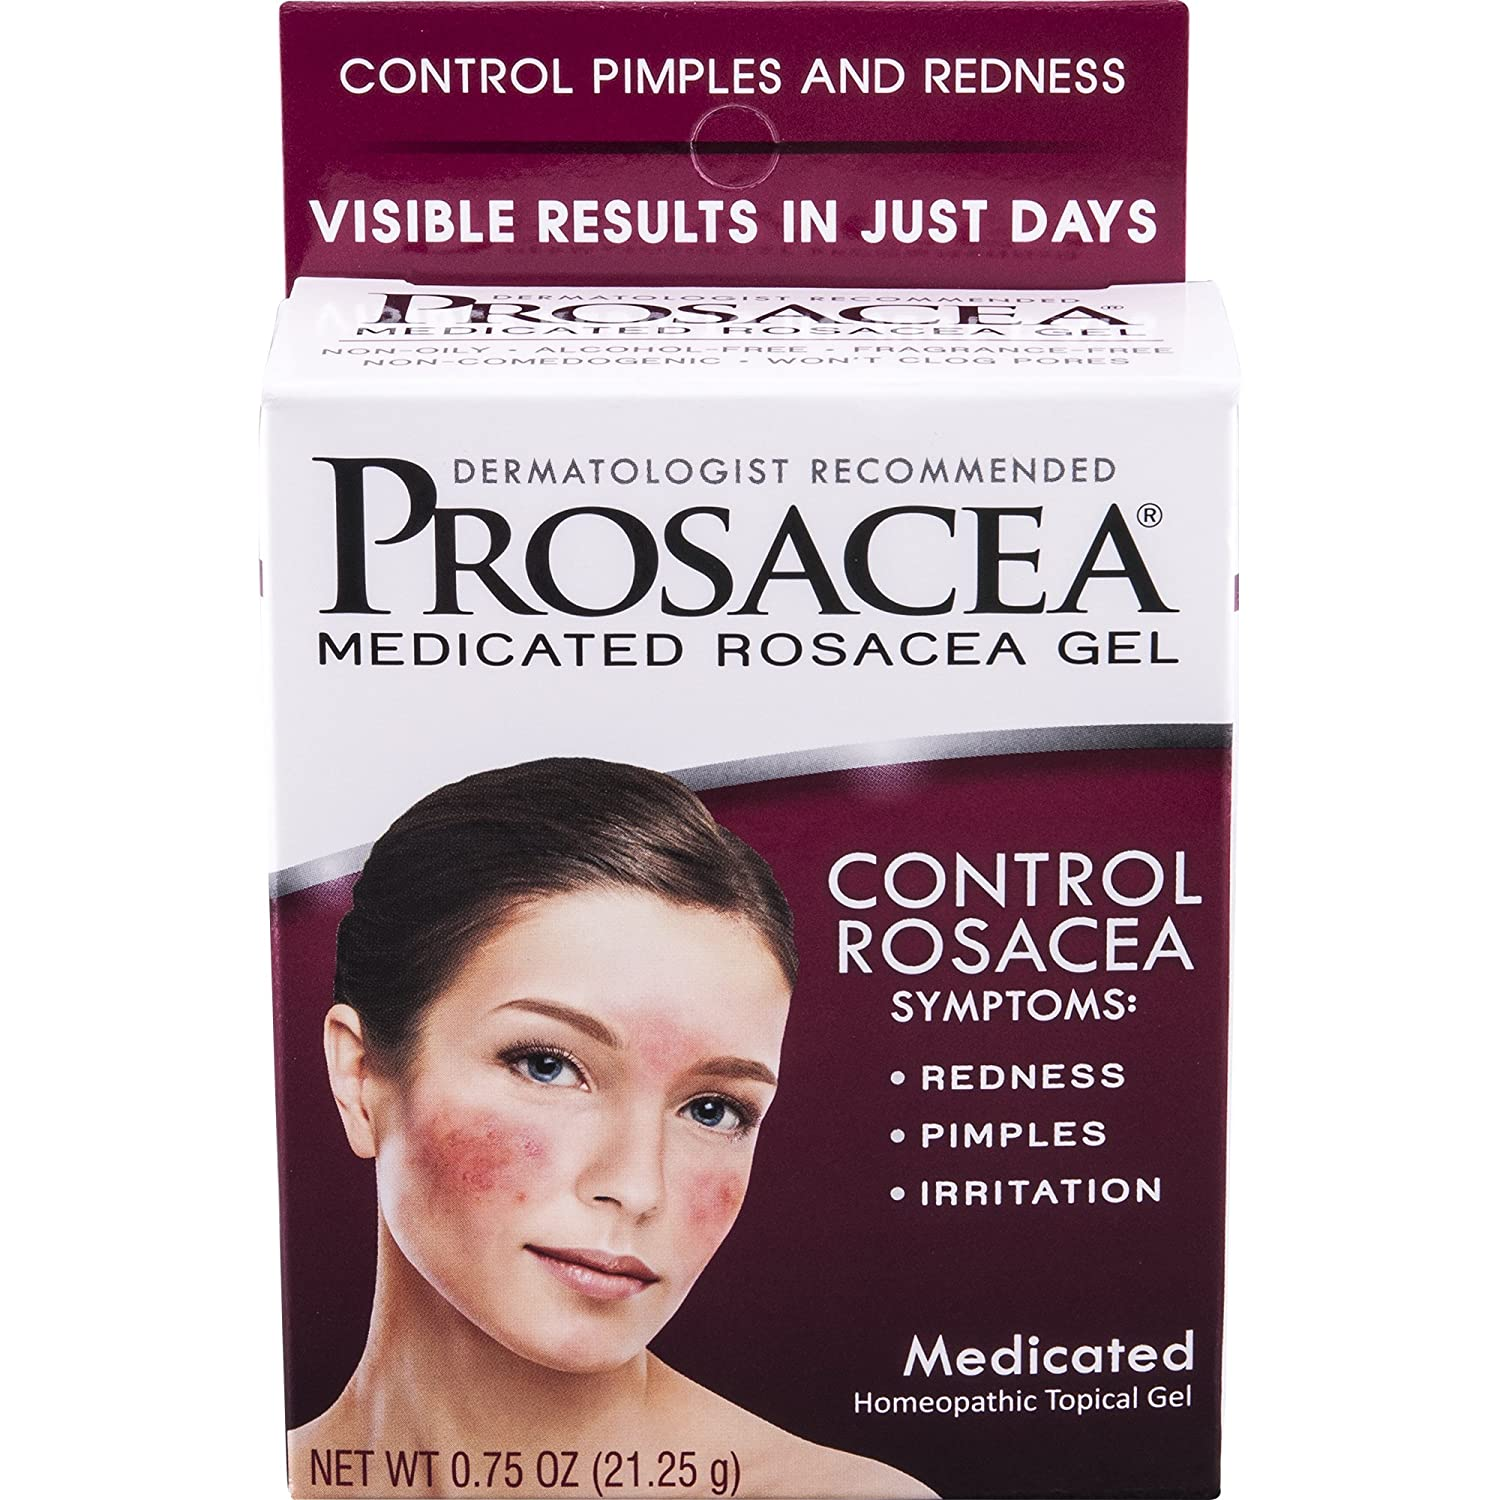 Prosacea—Medicated Rosacea Gel—0.75 Oz Tube—Multi-Symptom Relief of Bumps, Redness & Dryness from Rosacea—Calms and Soothes Skin